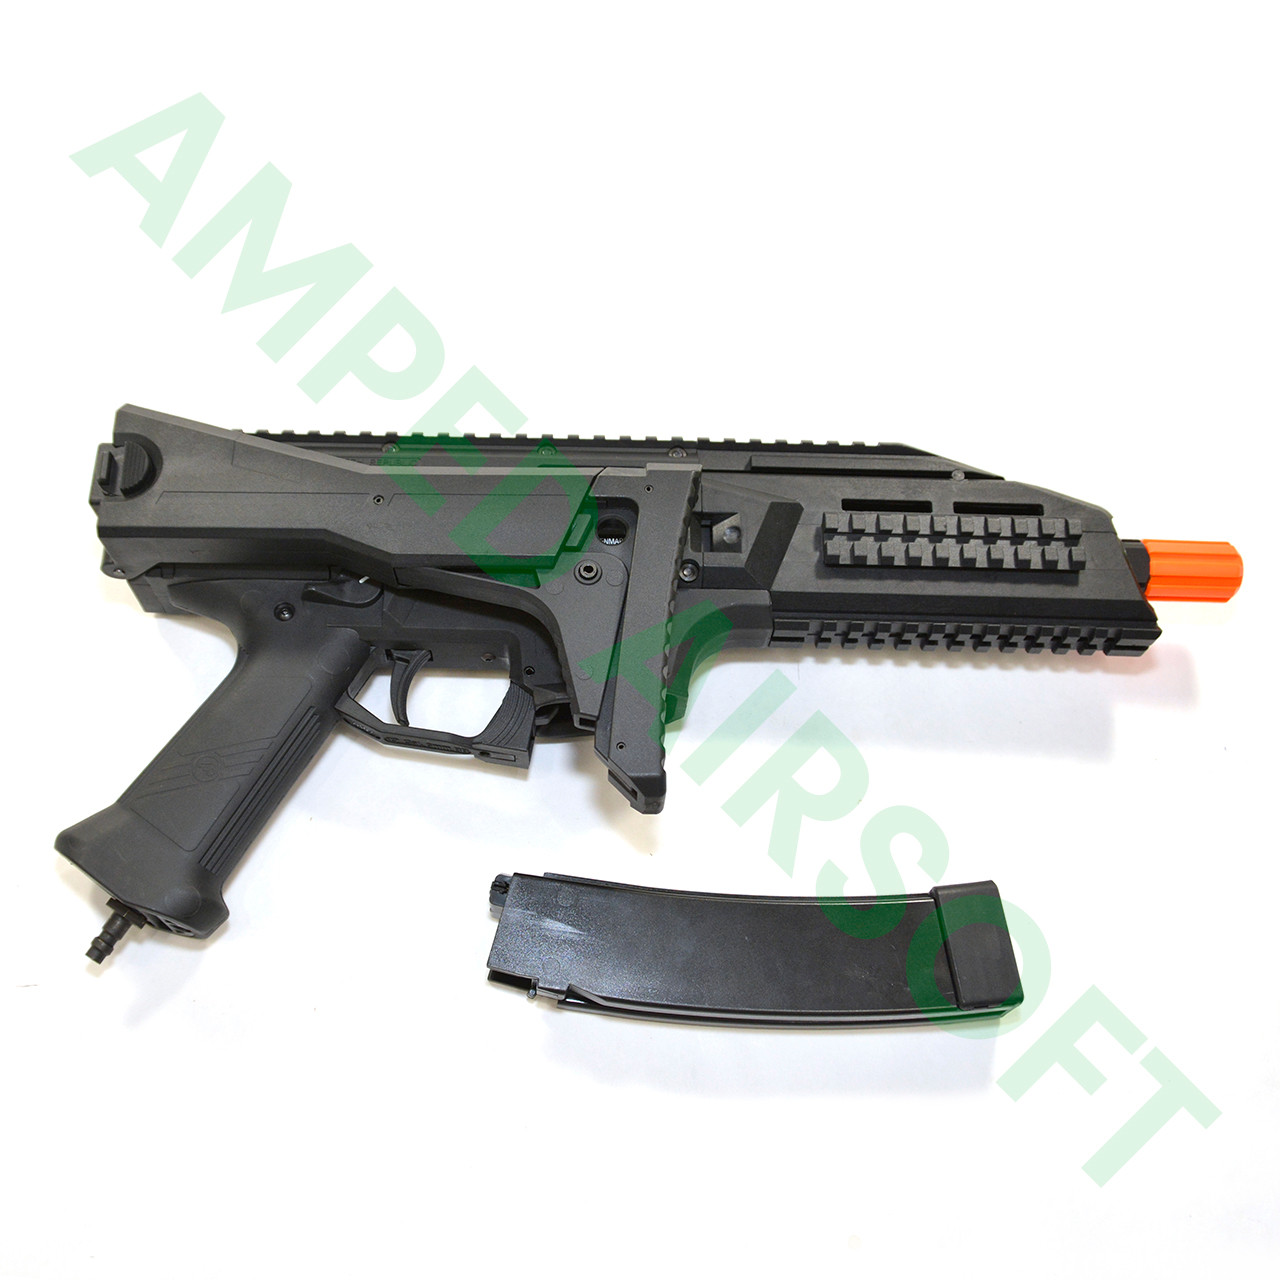 asg scorpion evo hpa inferno 003__51391.1498766570?c=2 asg cz scorpion evo 3 a1 proline hpa (wolverine gen 2)  at readyjetset.co